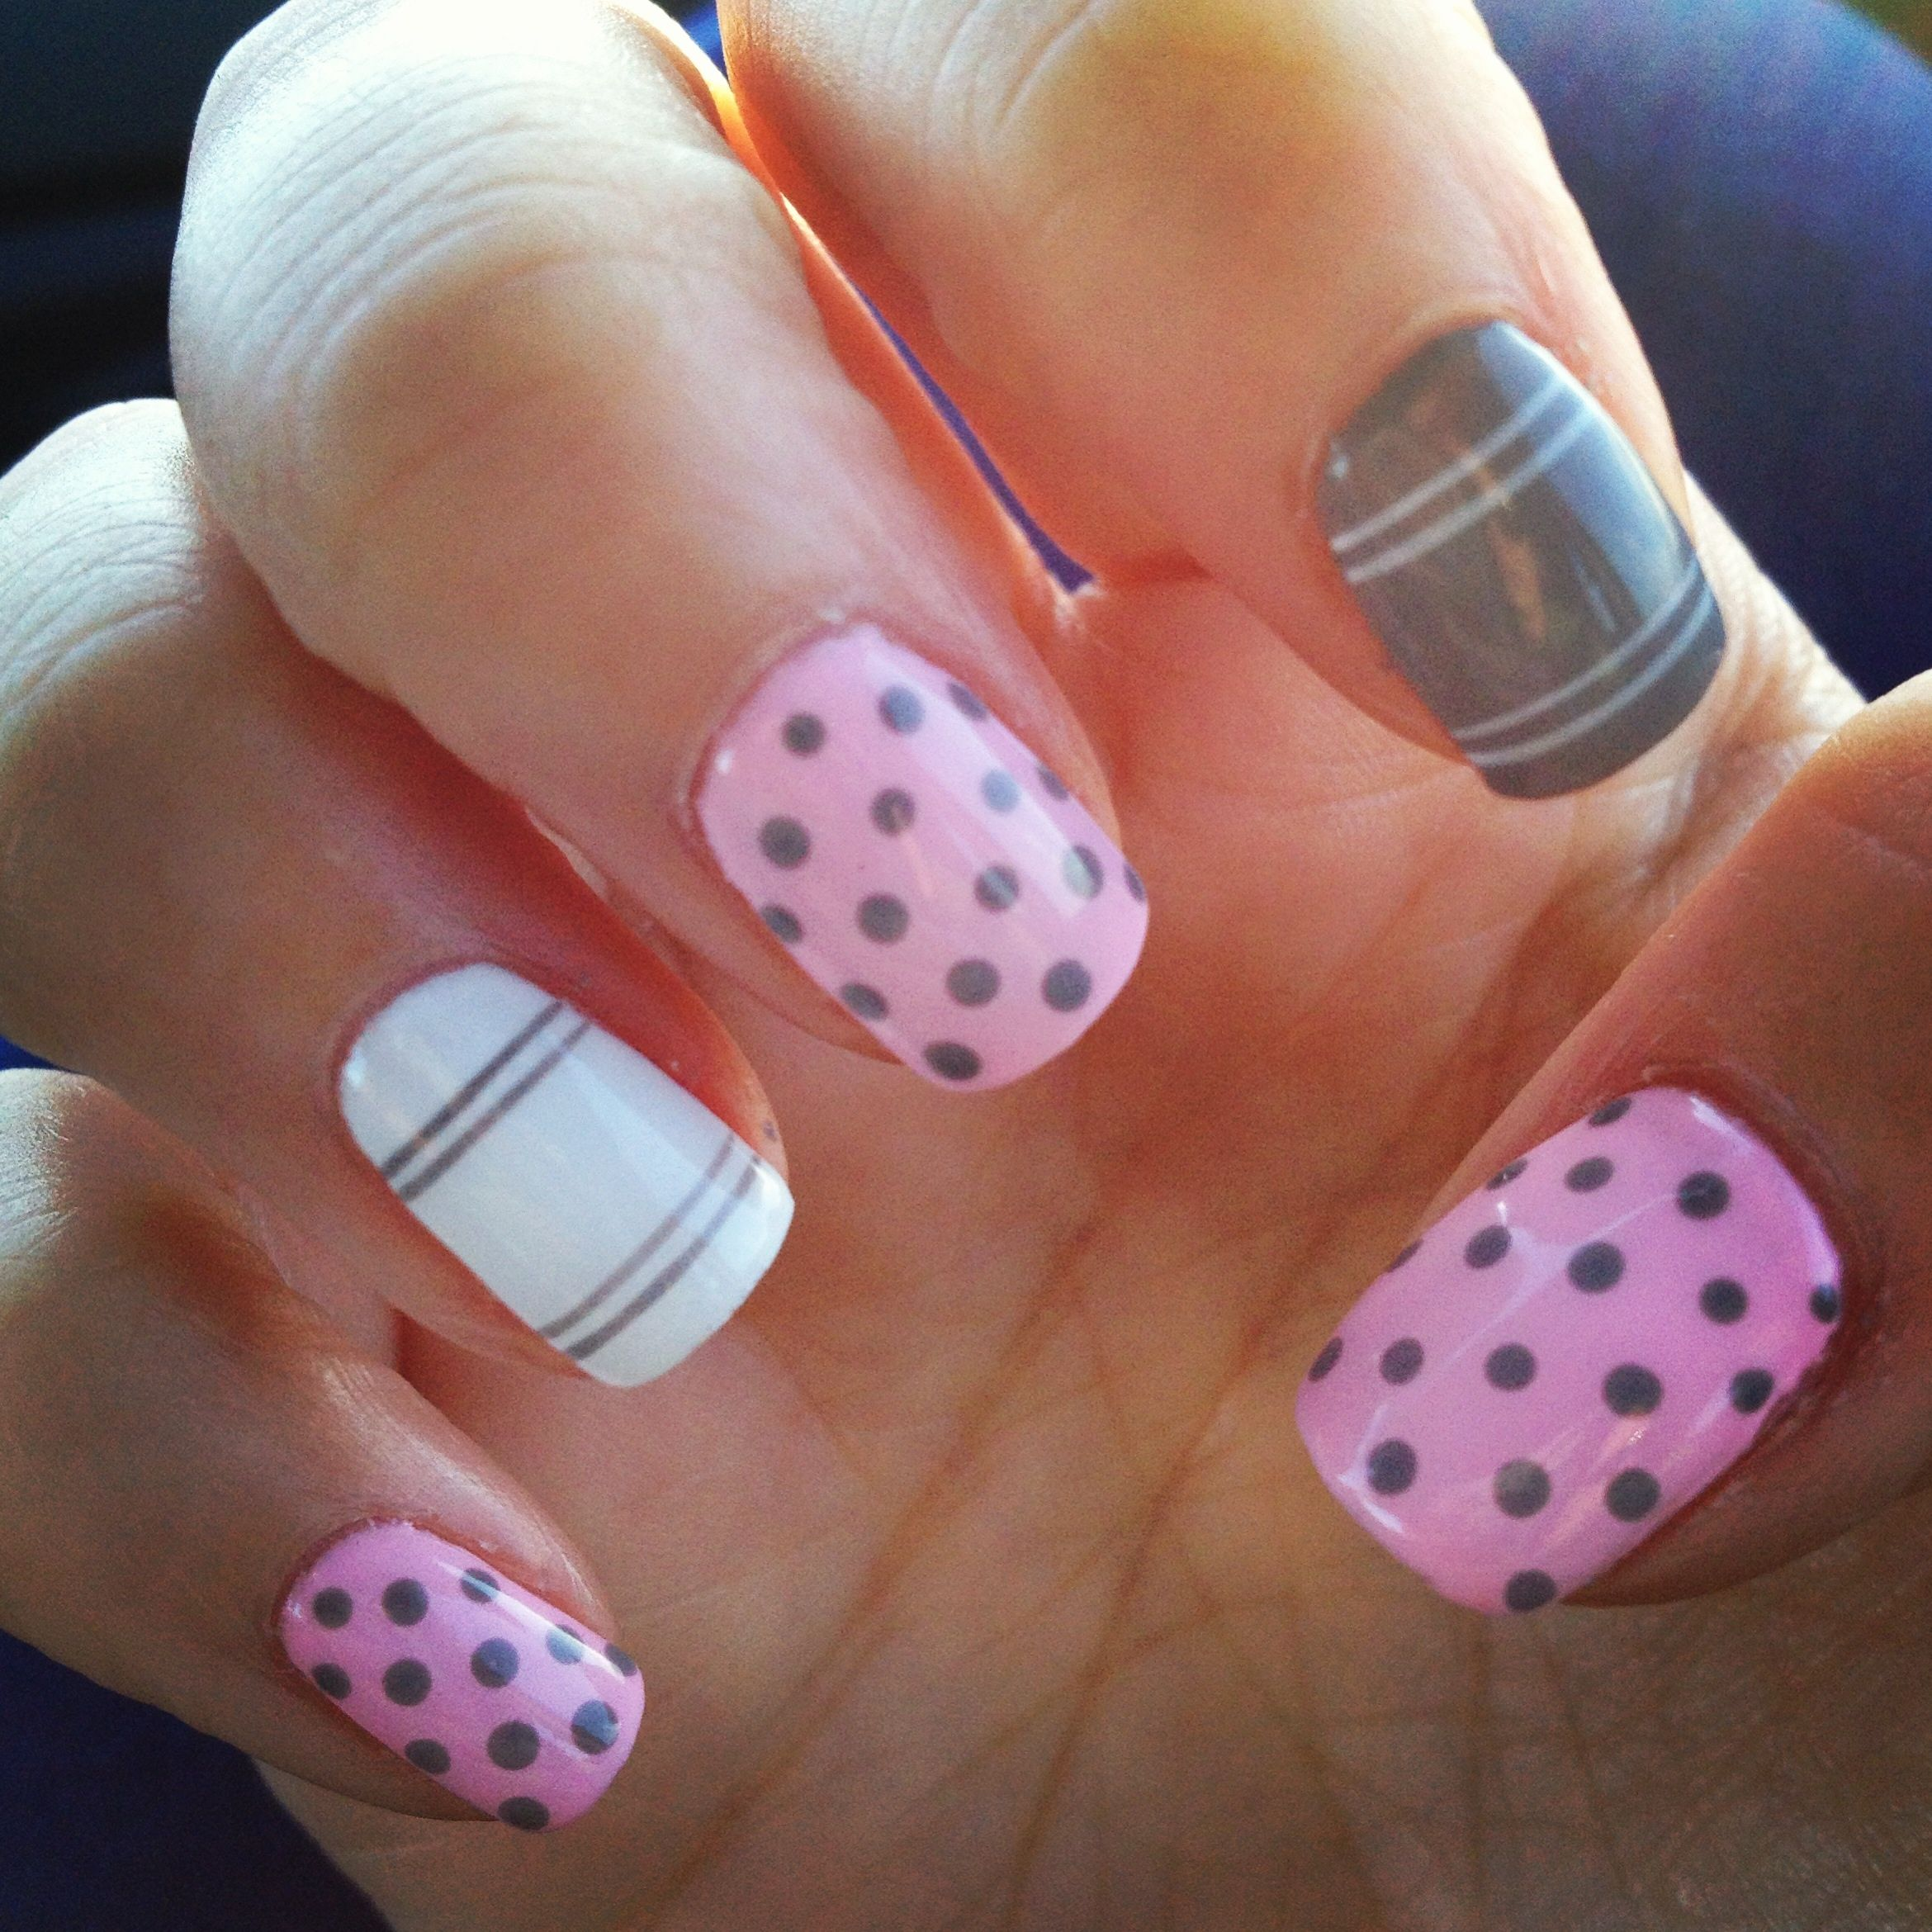 Pin By Stephanie On Nail Art Designs August Nails Natural Nails Gel Nails